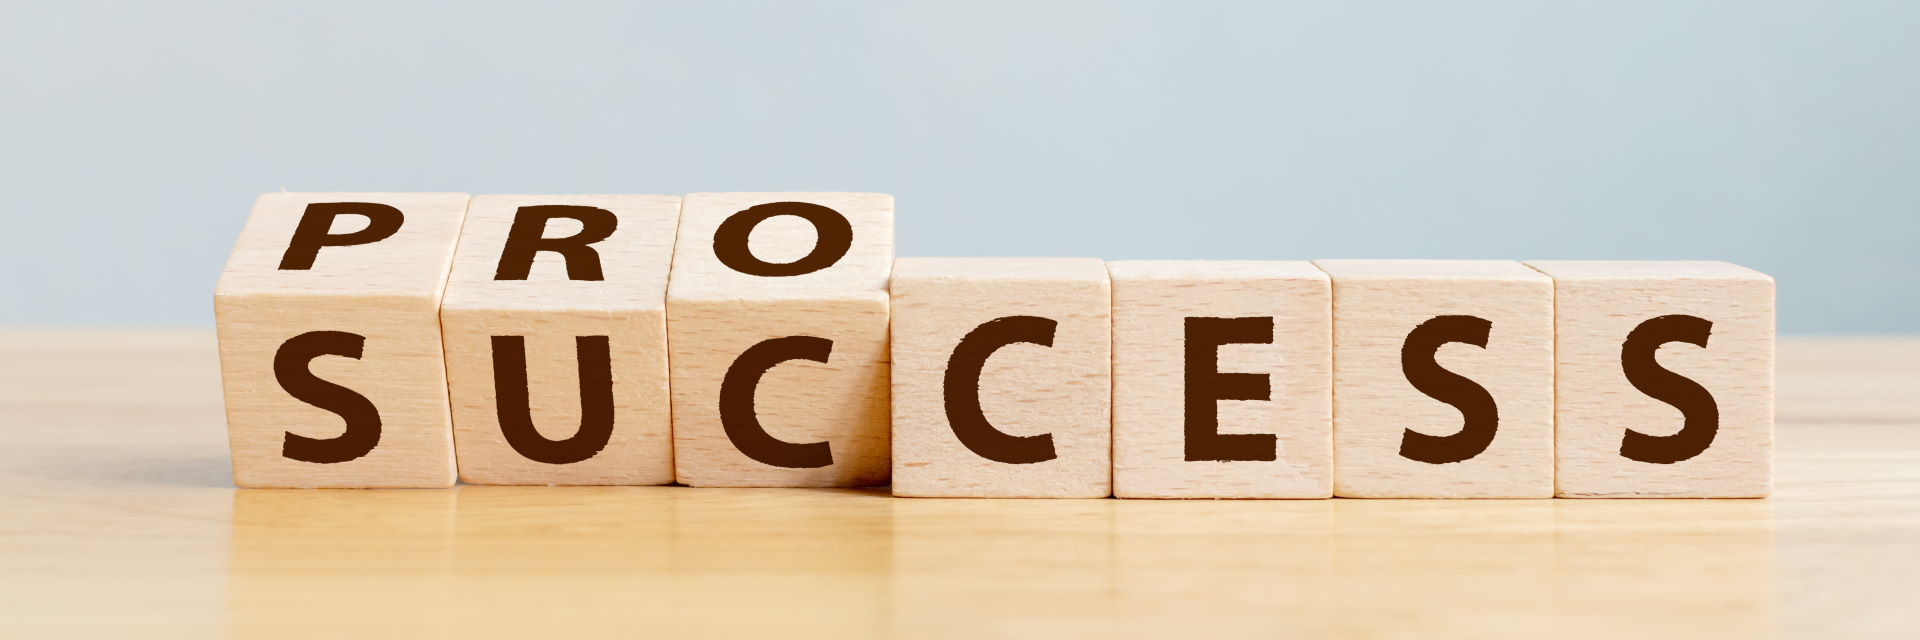 Wooden blocks that spell process and success